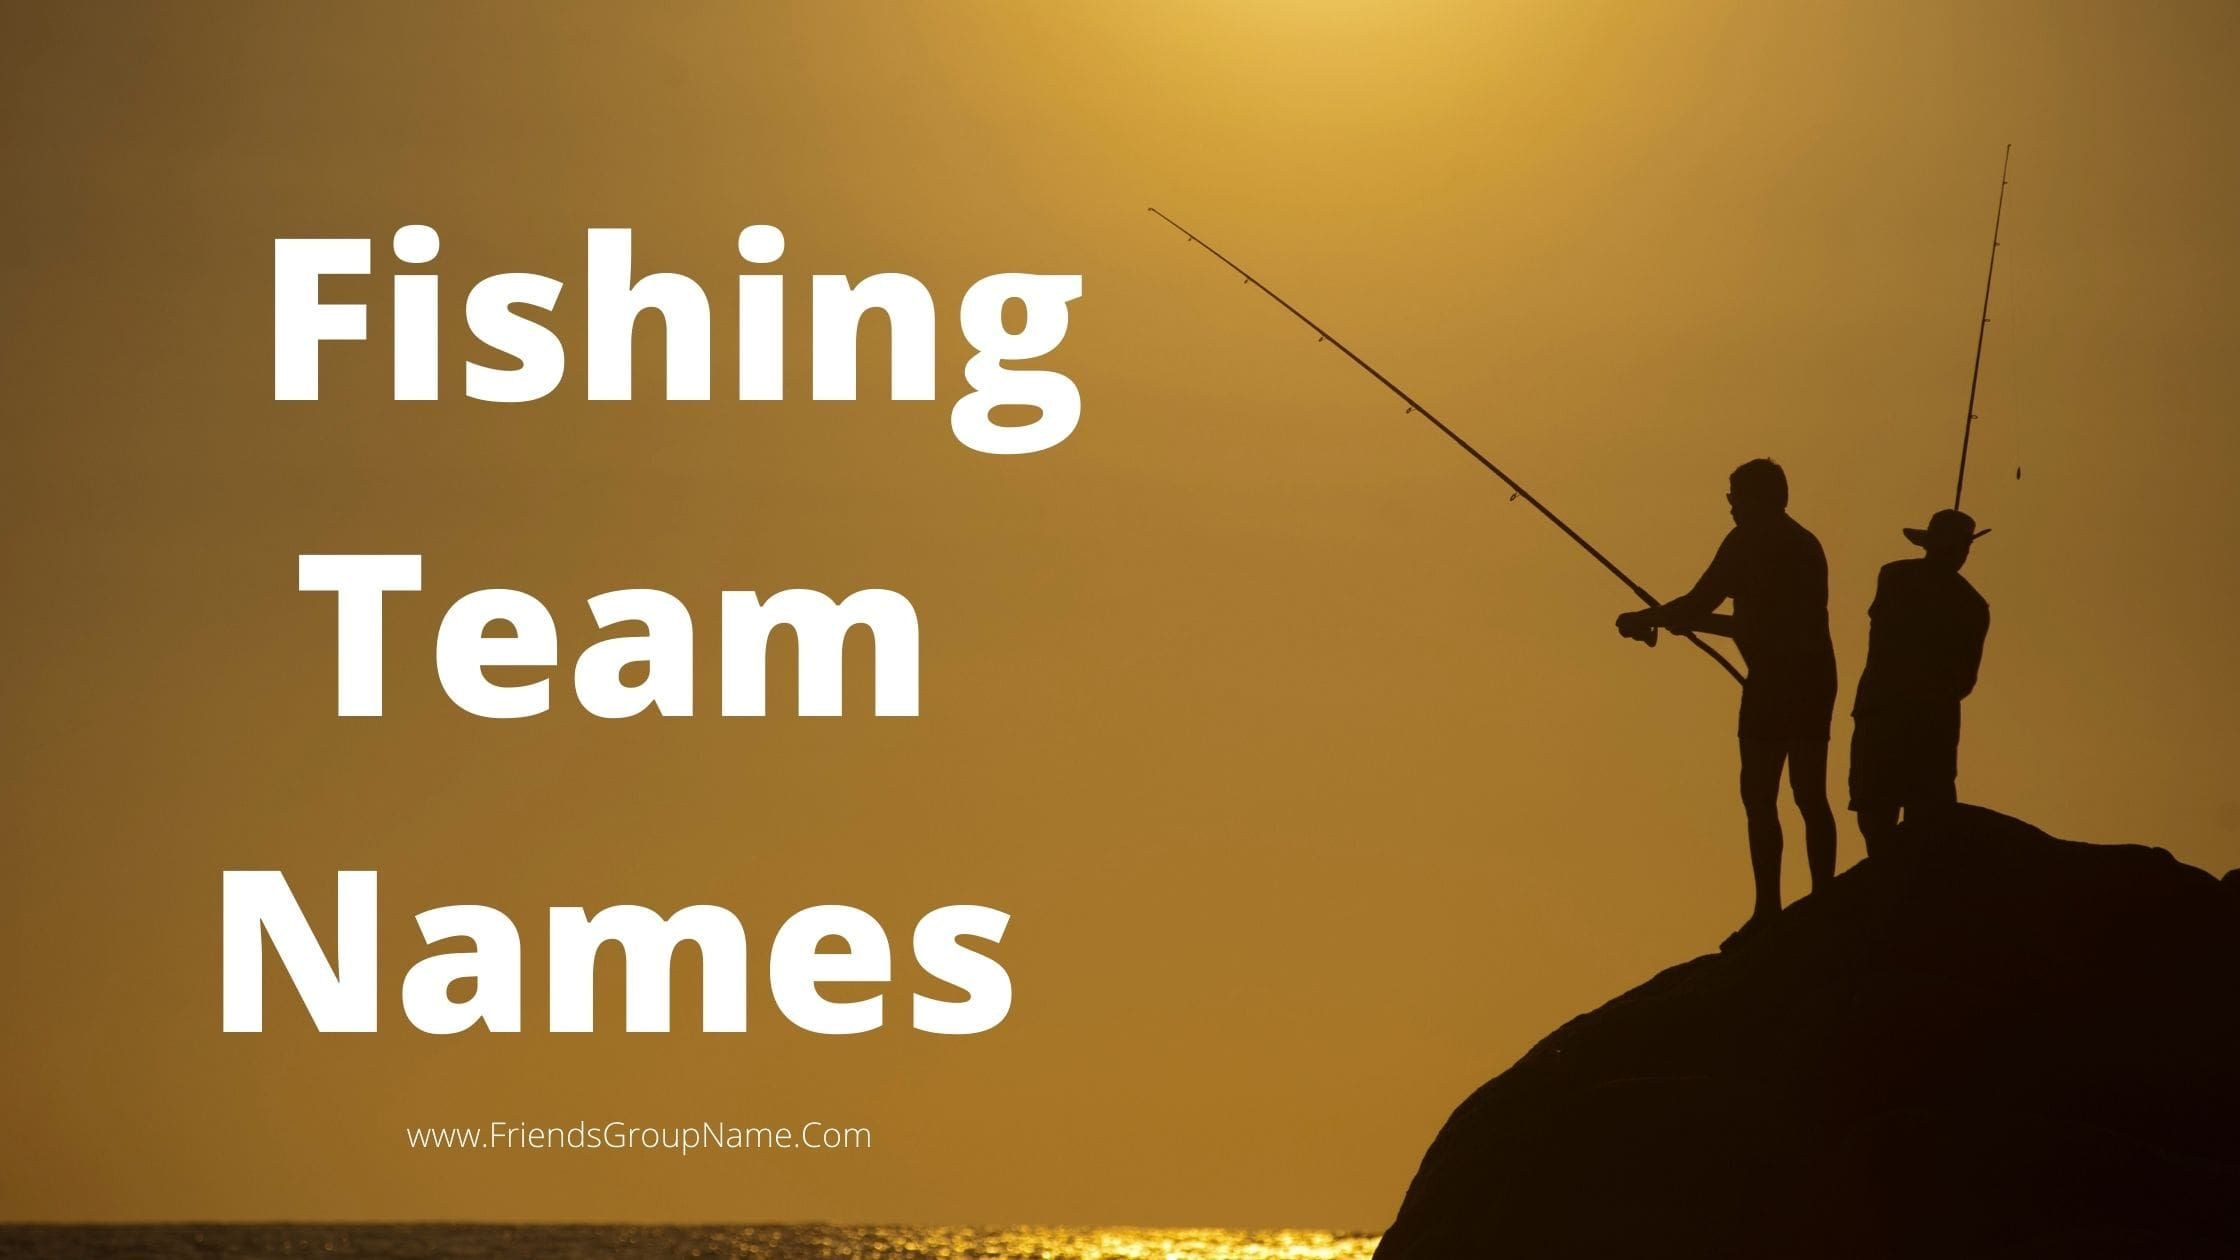 Fishing Team Names